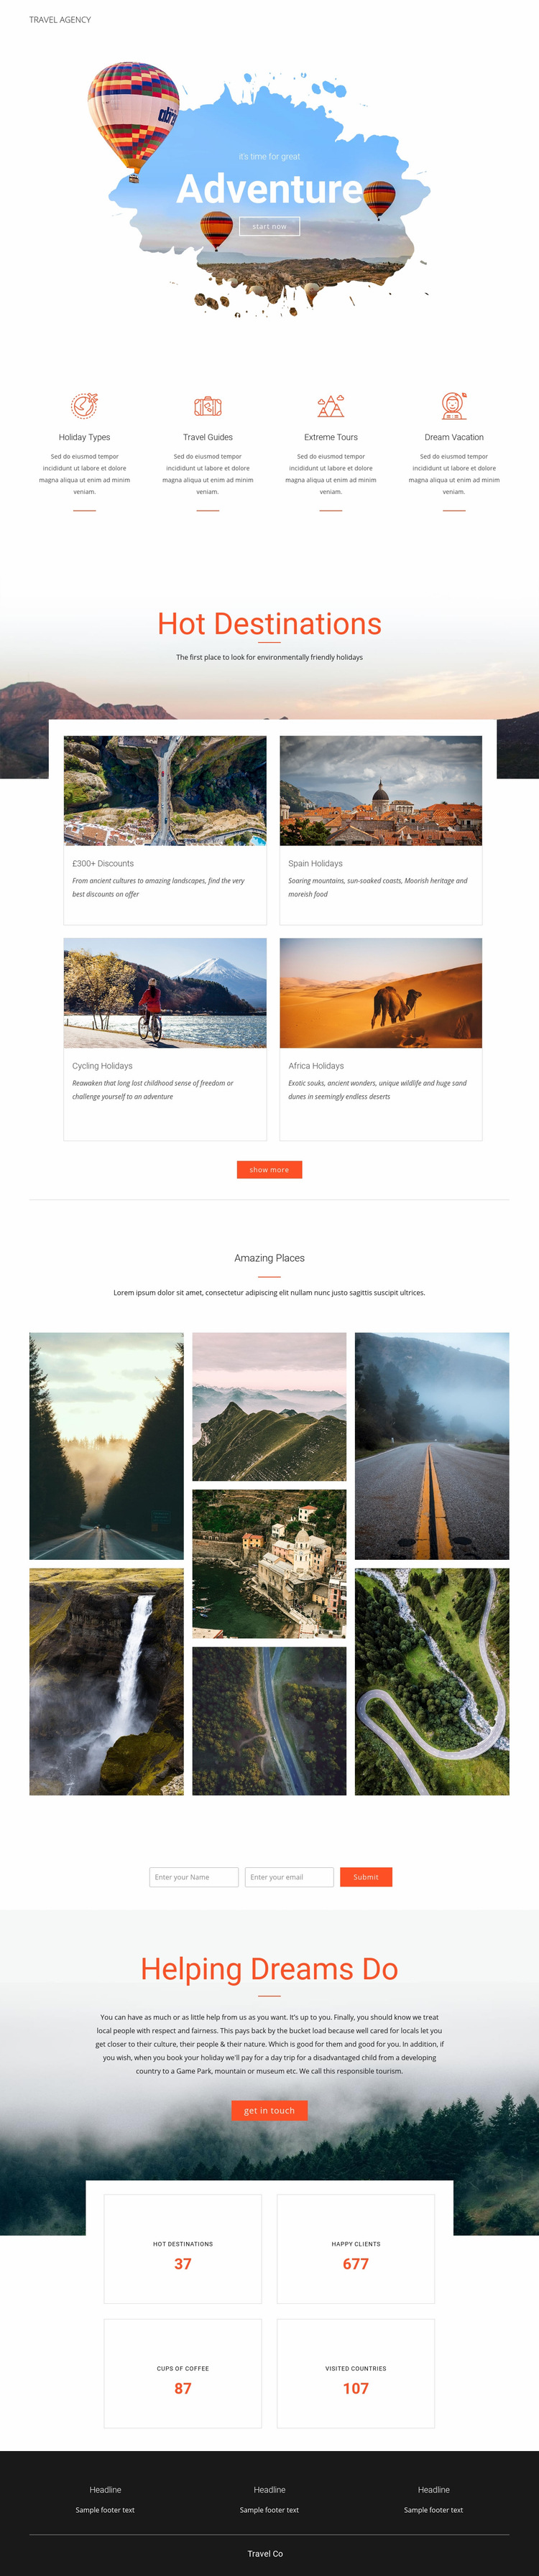 Adventure tours and travel Web Page Design